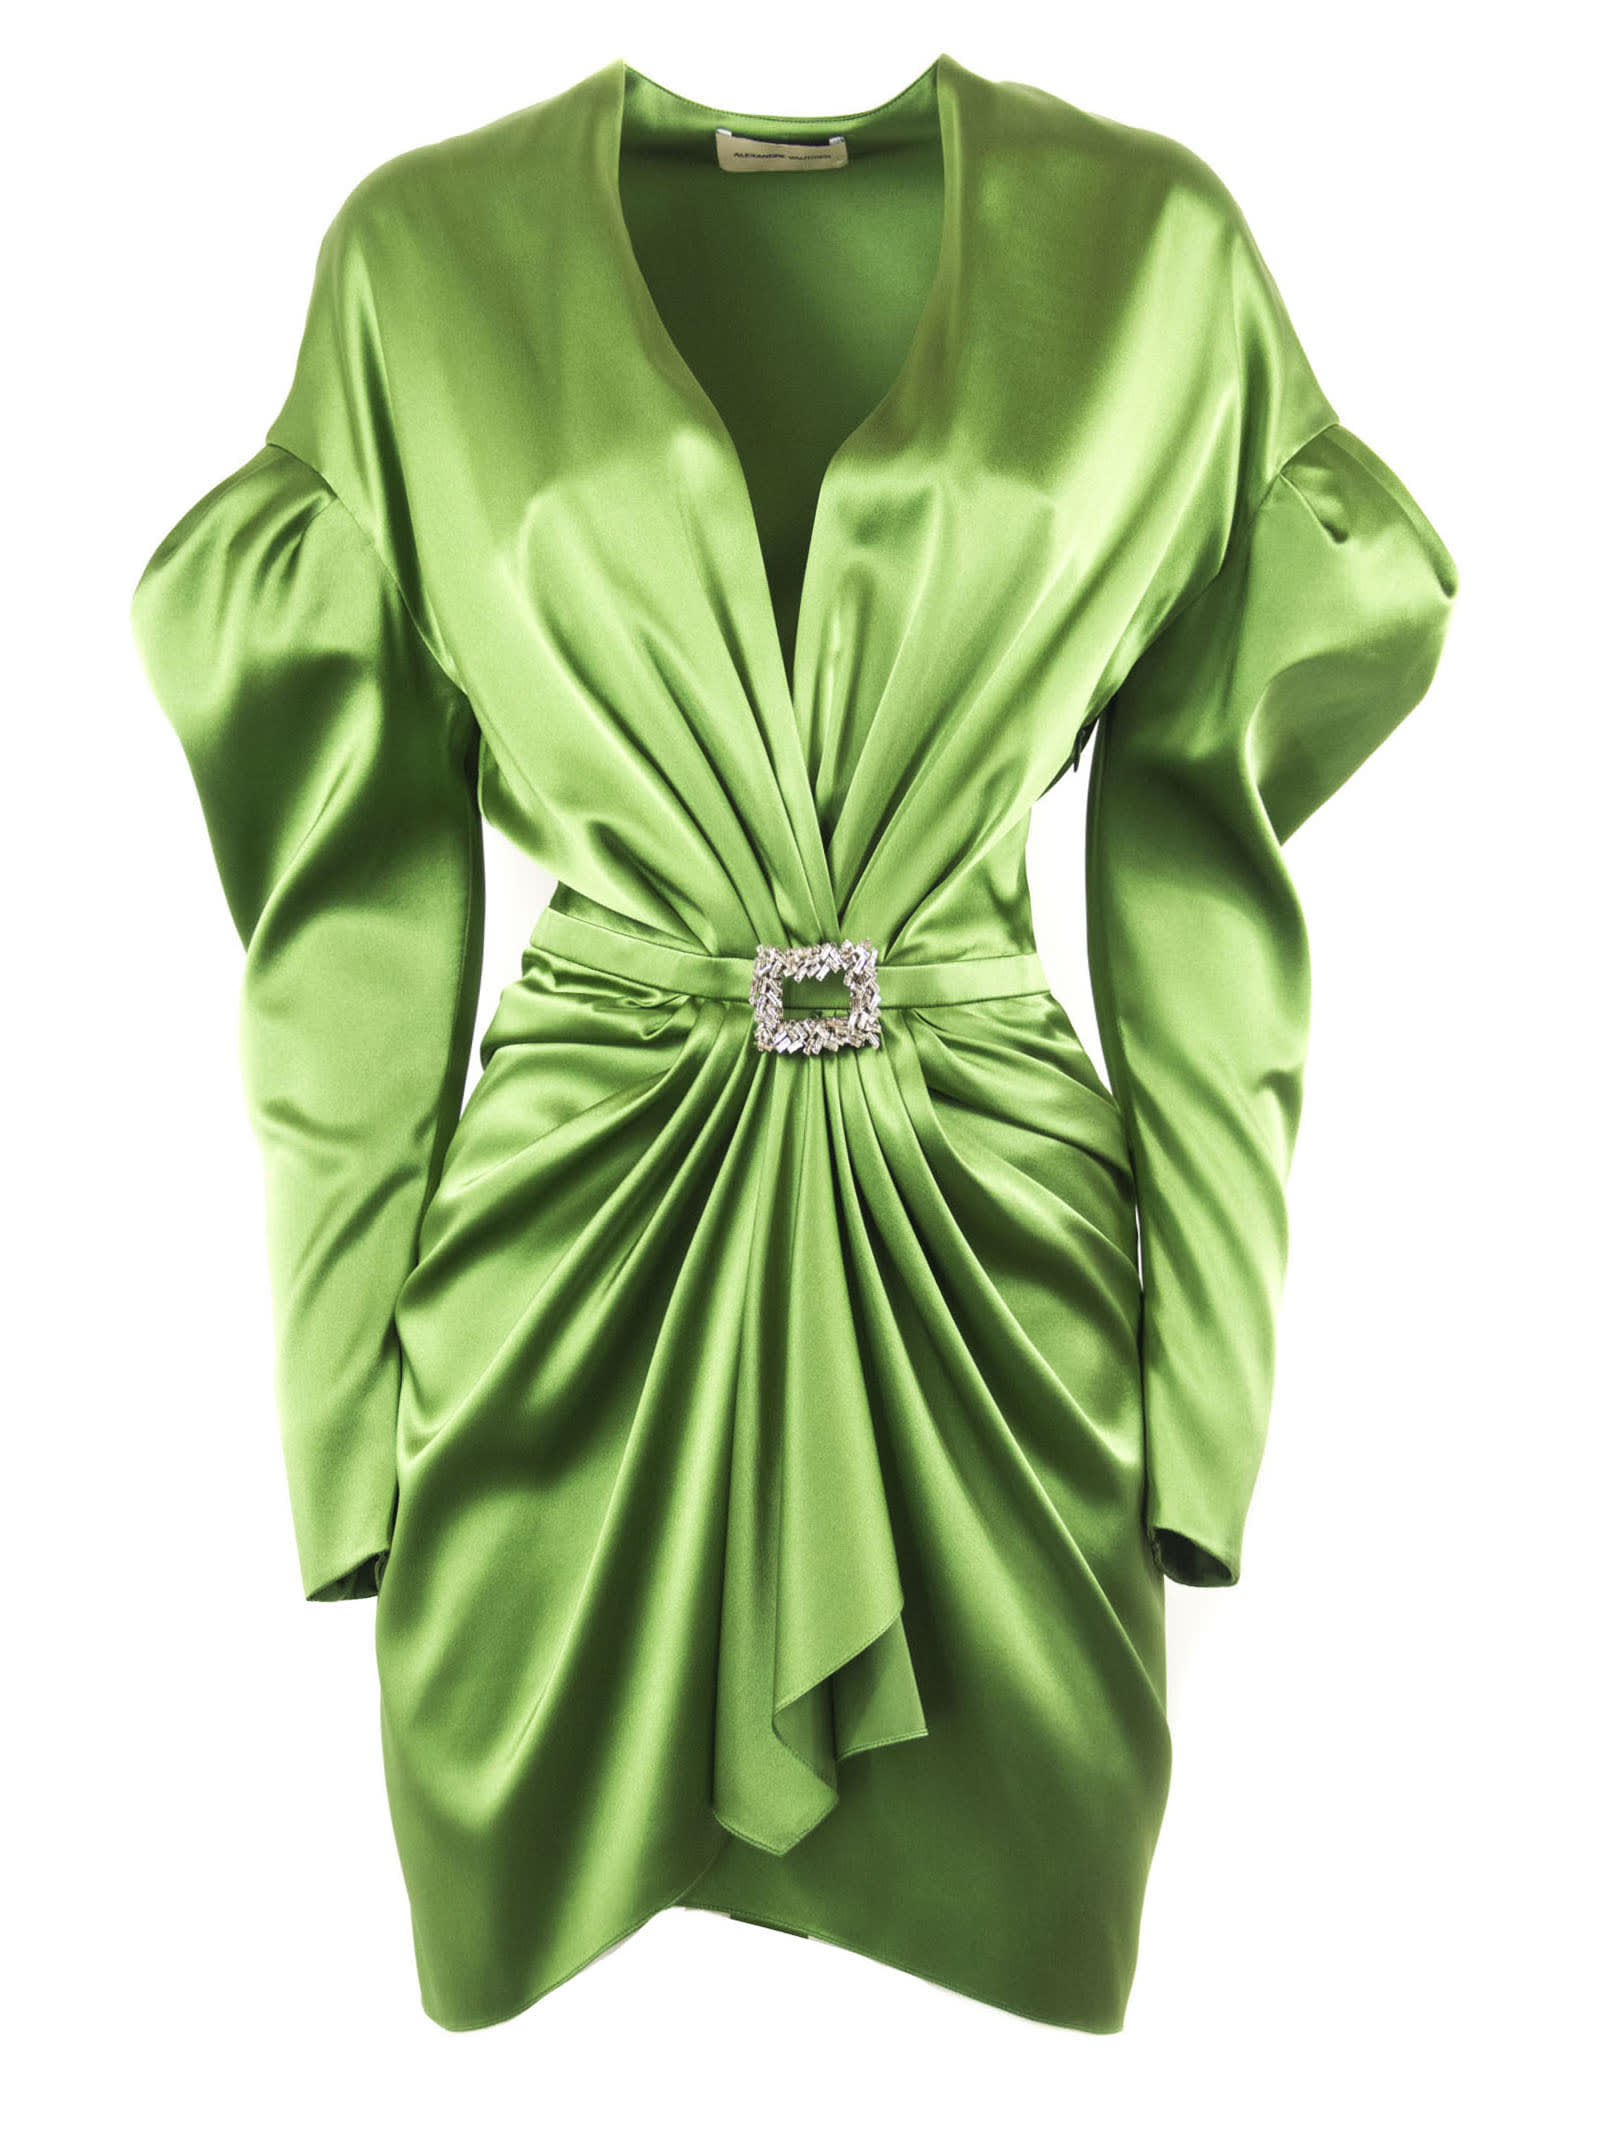 Alexandre Vauthier Green Silk Blend Mini Dress